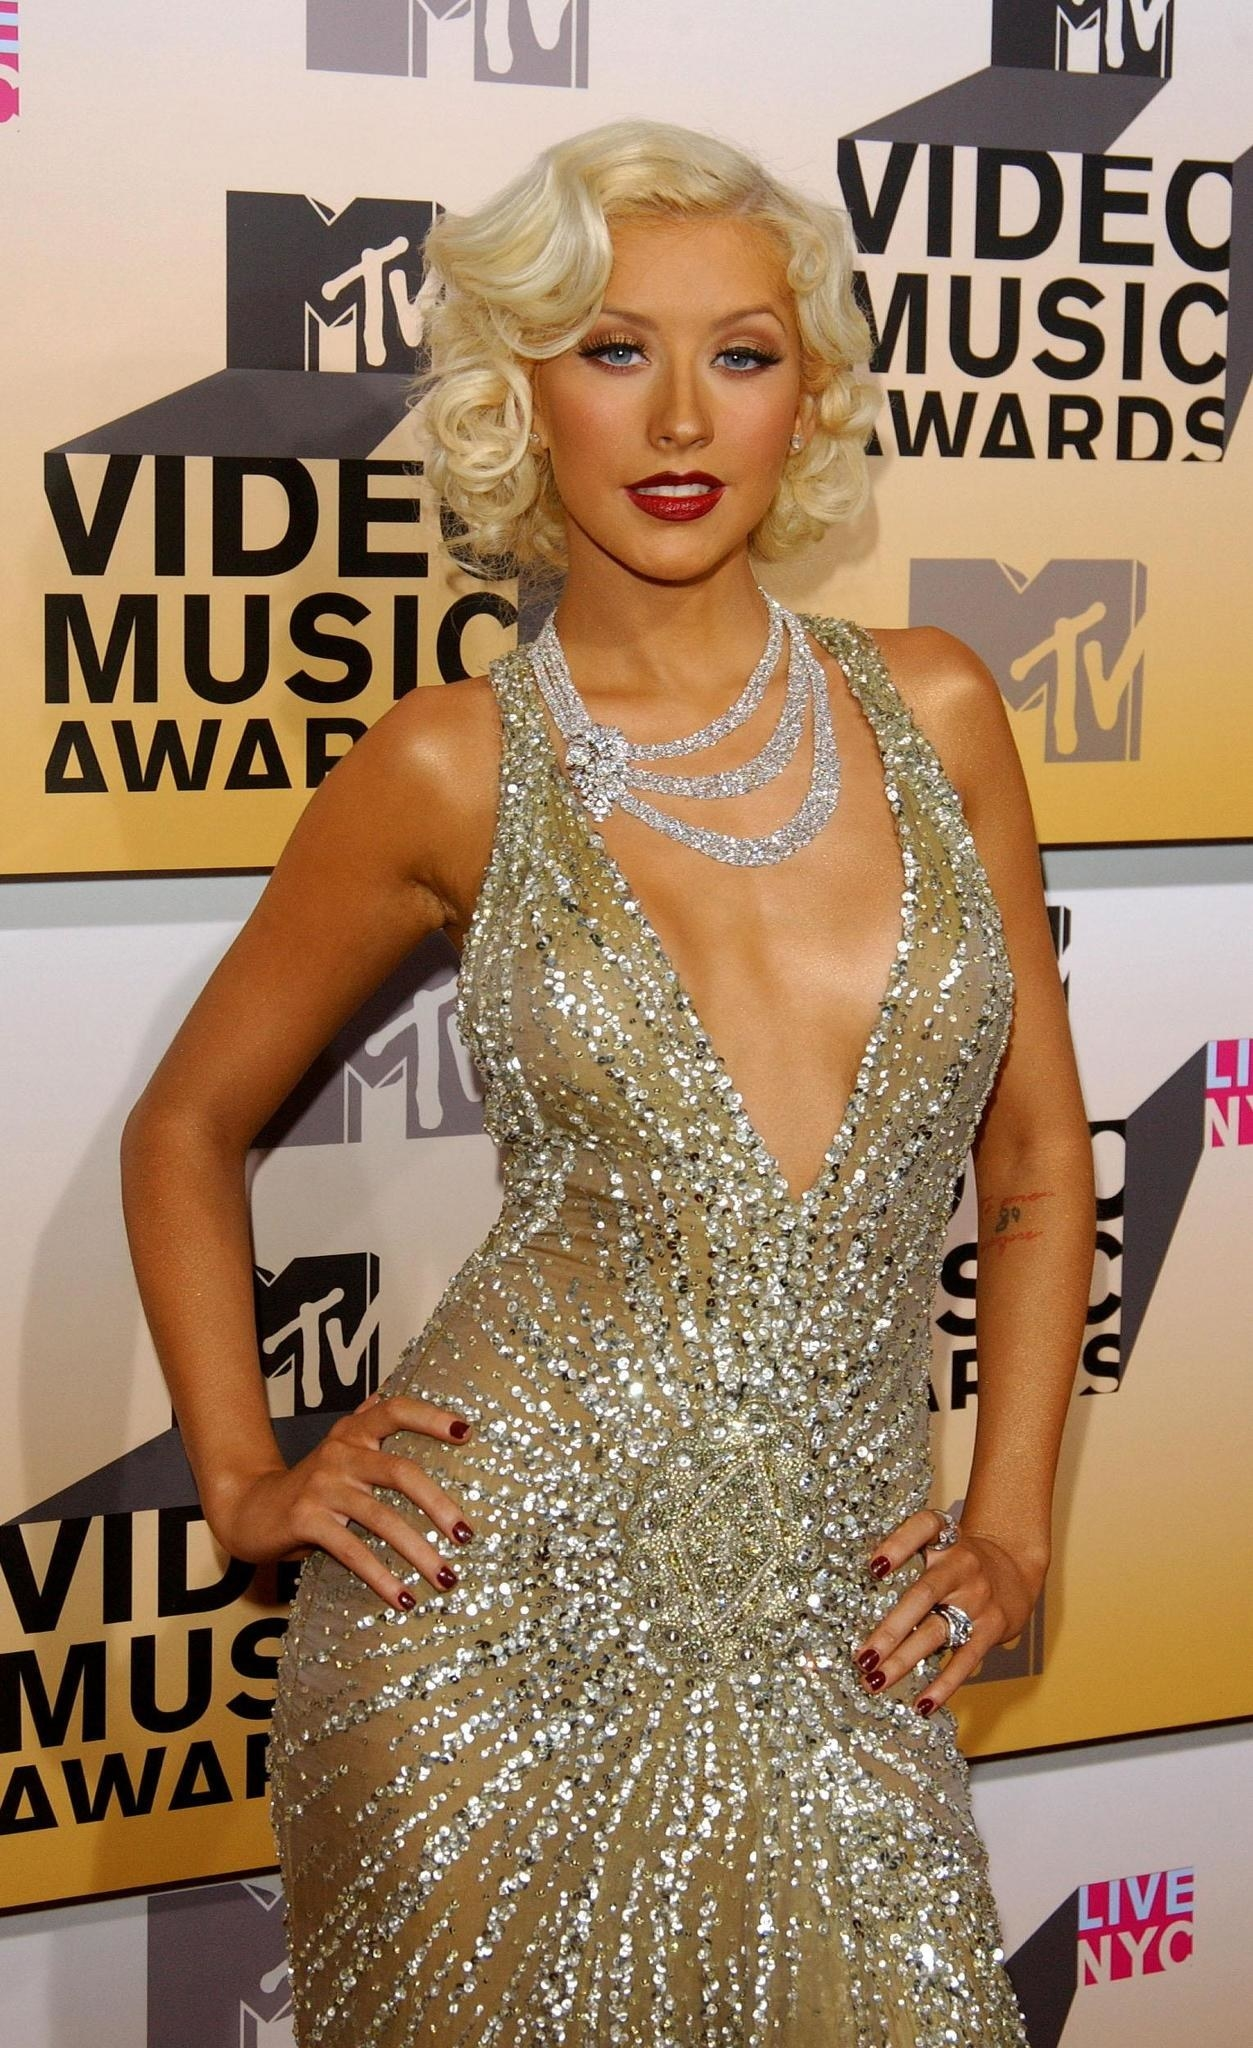 Christina Aguilera at the Video Music Awards in 2006